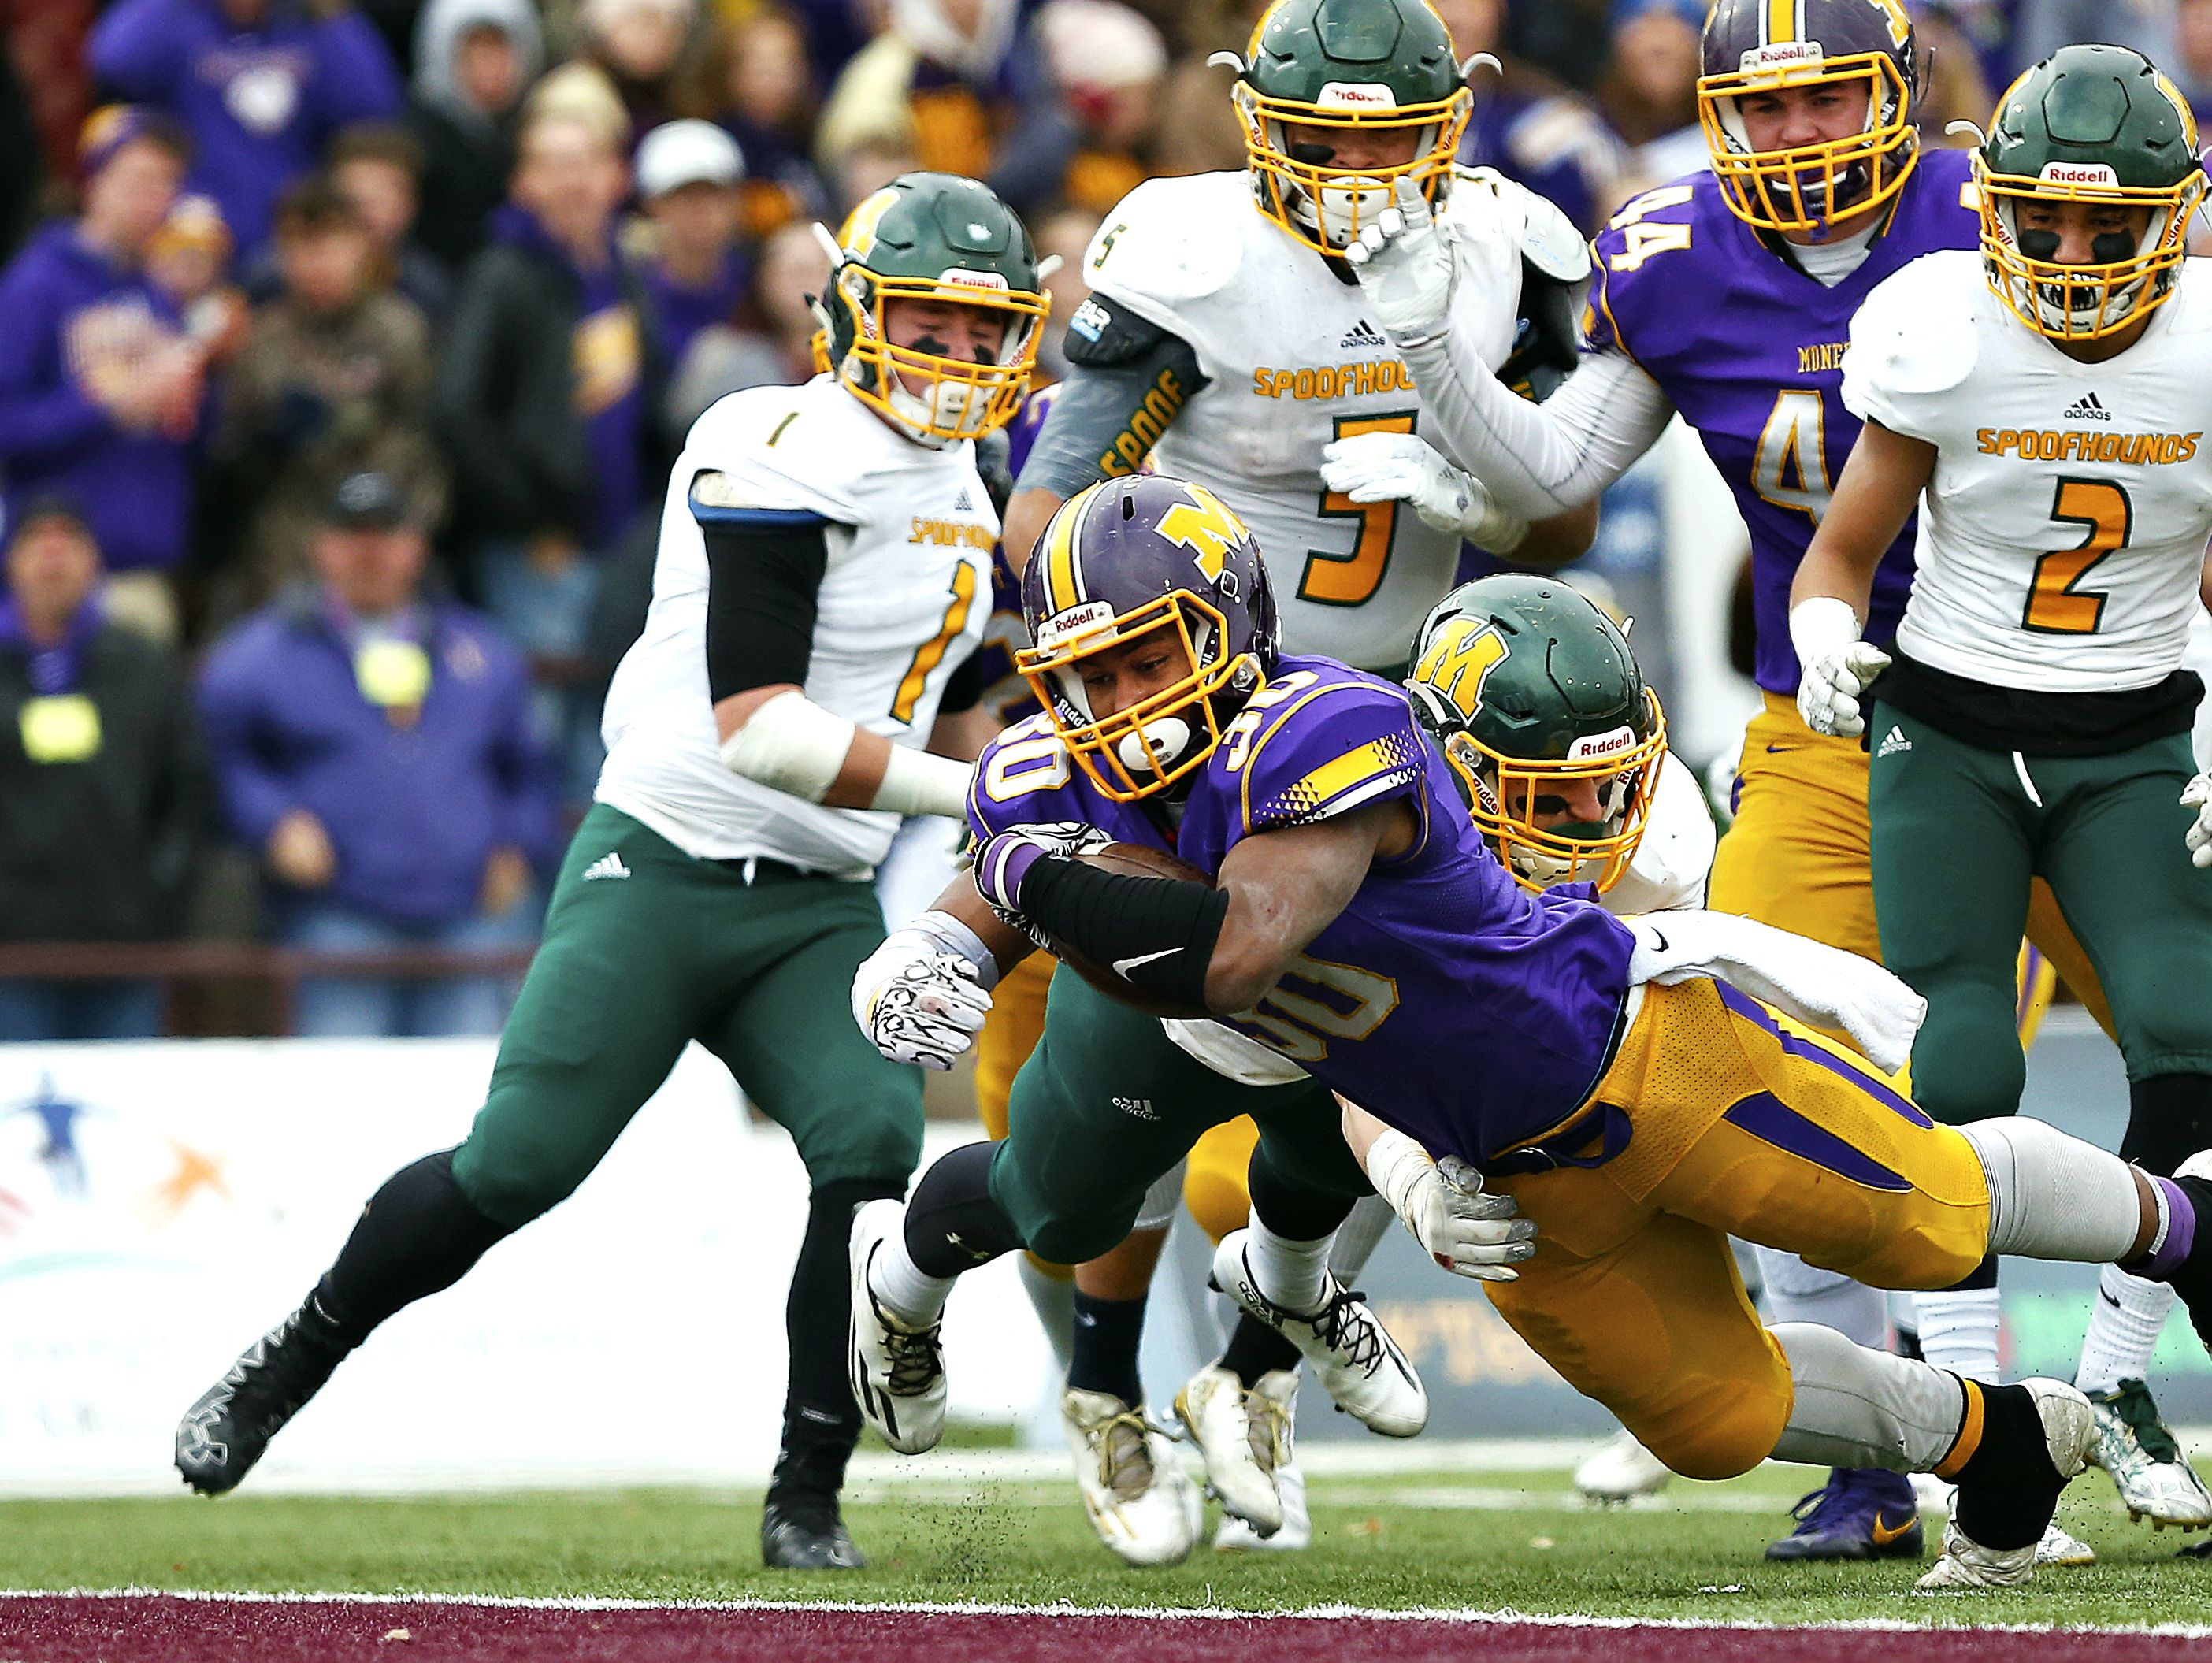 Monett High School running back Michael Branch (30) dives toward the end zone to score a touchdown during third quarter action of the MSHSAA Class 3 State Championship Game between the Monett High School Cubs and the Maryville High School Spoofhounds at Robert W. Plaster Stadium in Springfield, Mo. on Nov. 26, 2016. The Monett Cubs won the game 27-18.